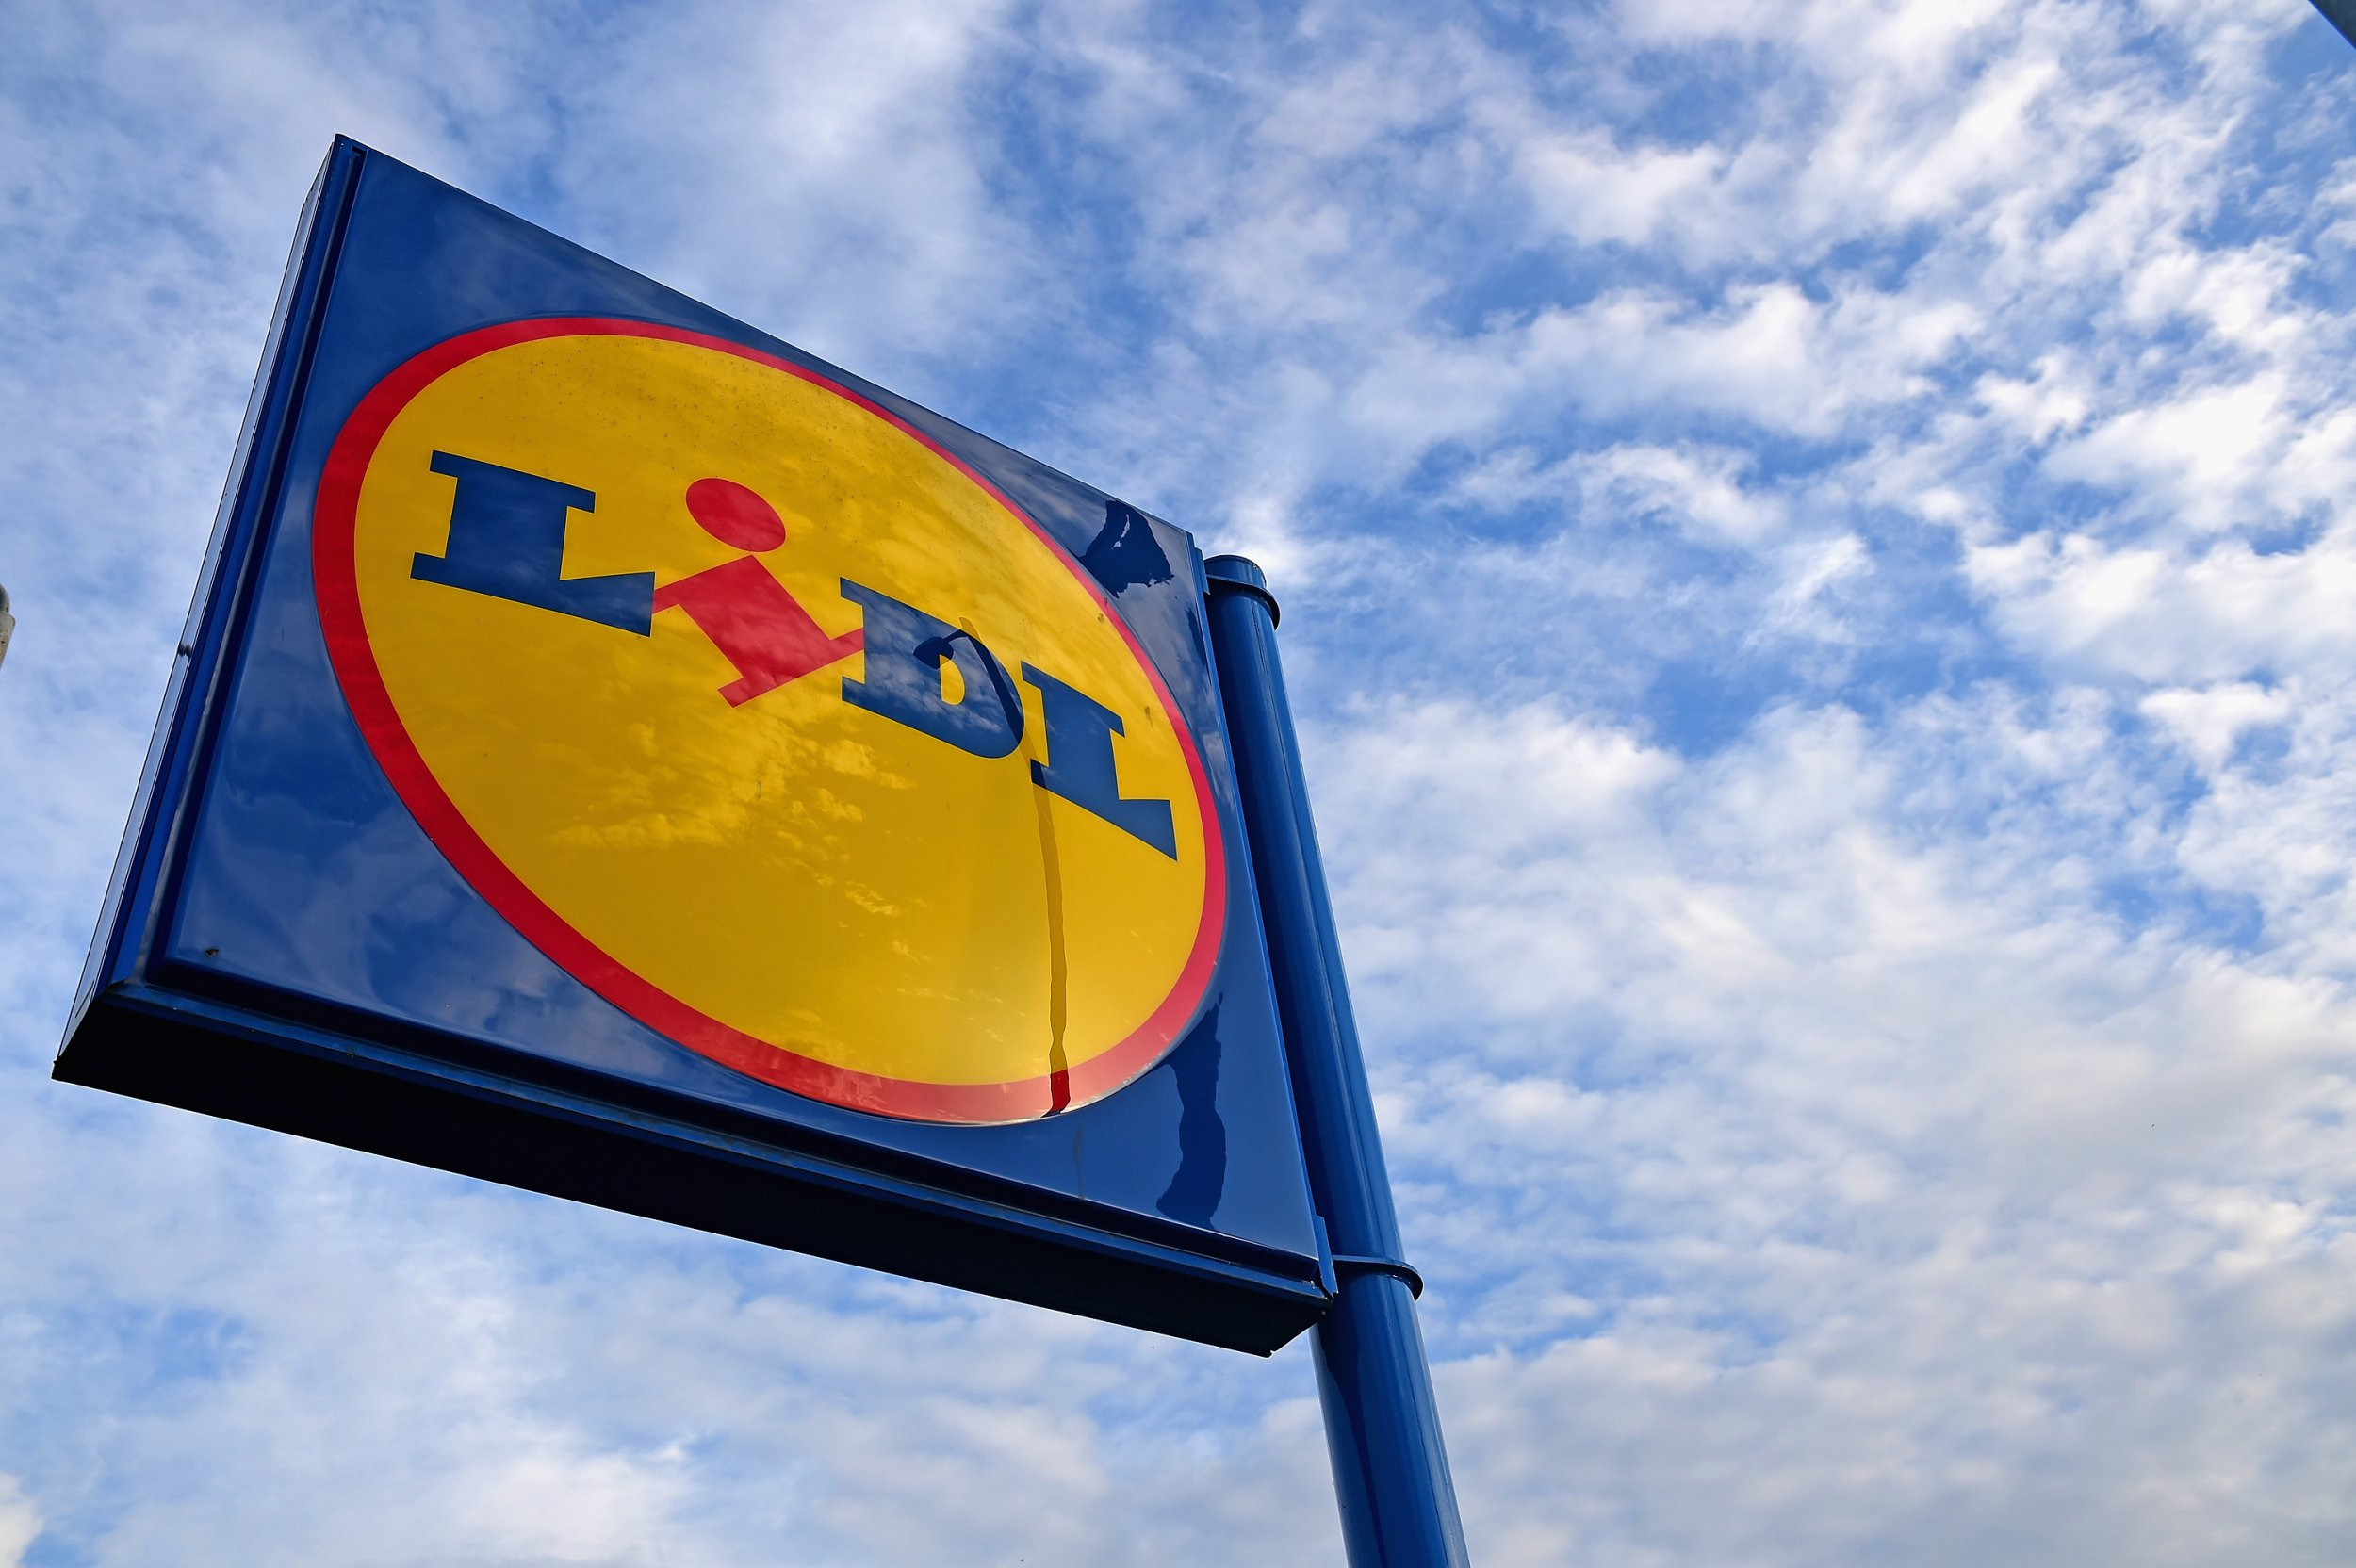 Lidl opening times for Good Friday, Easter Sunday and Easter Monday 2019